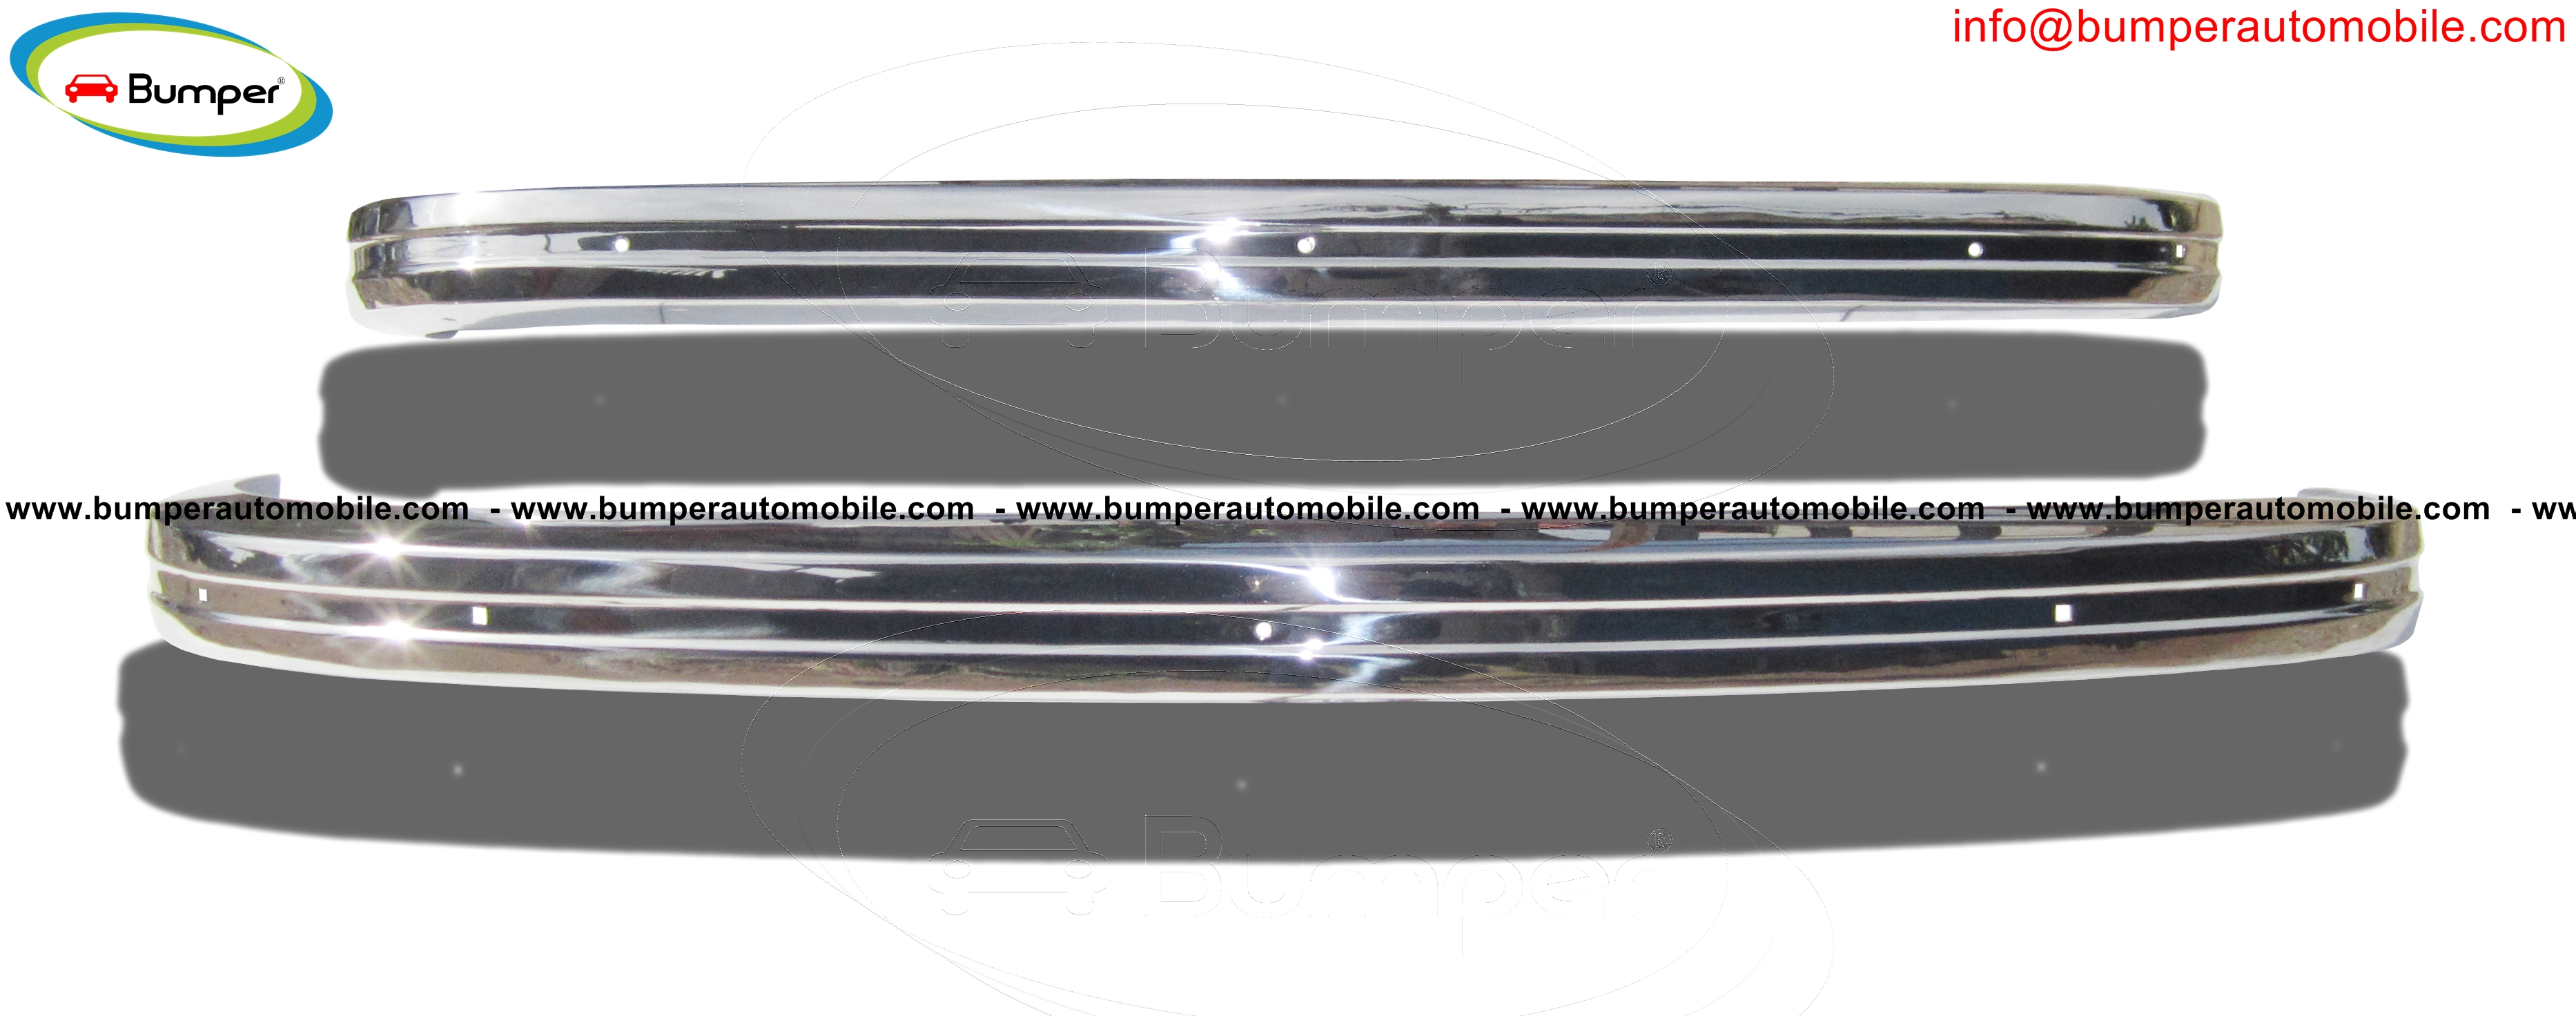 Stainless steel bumper type Volkswagen Type 3 years (1970-1973)